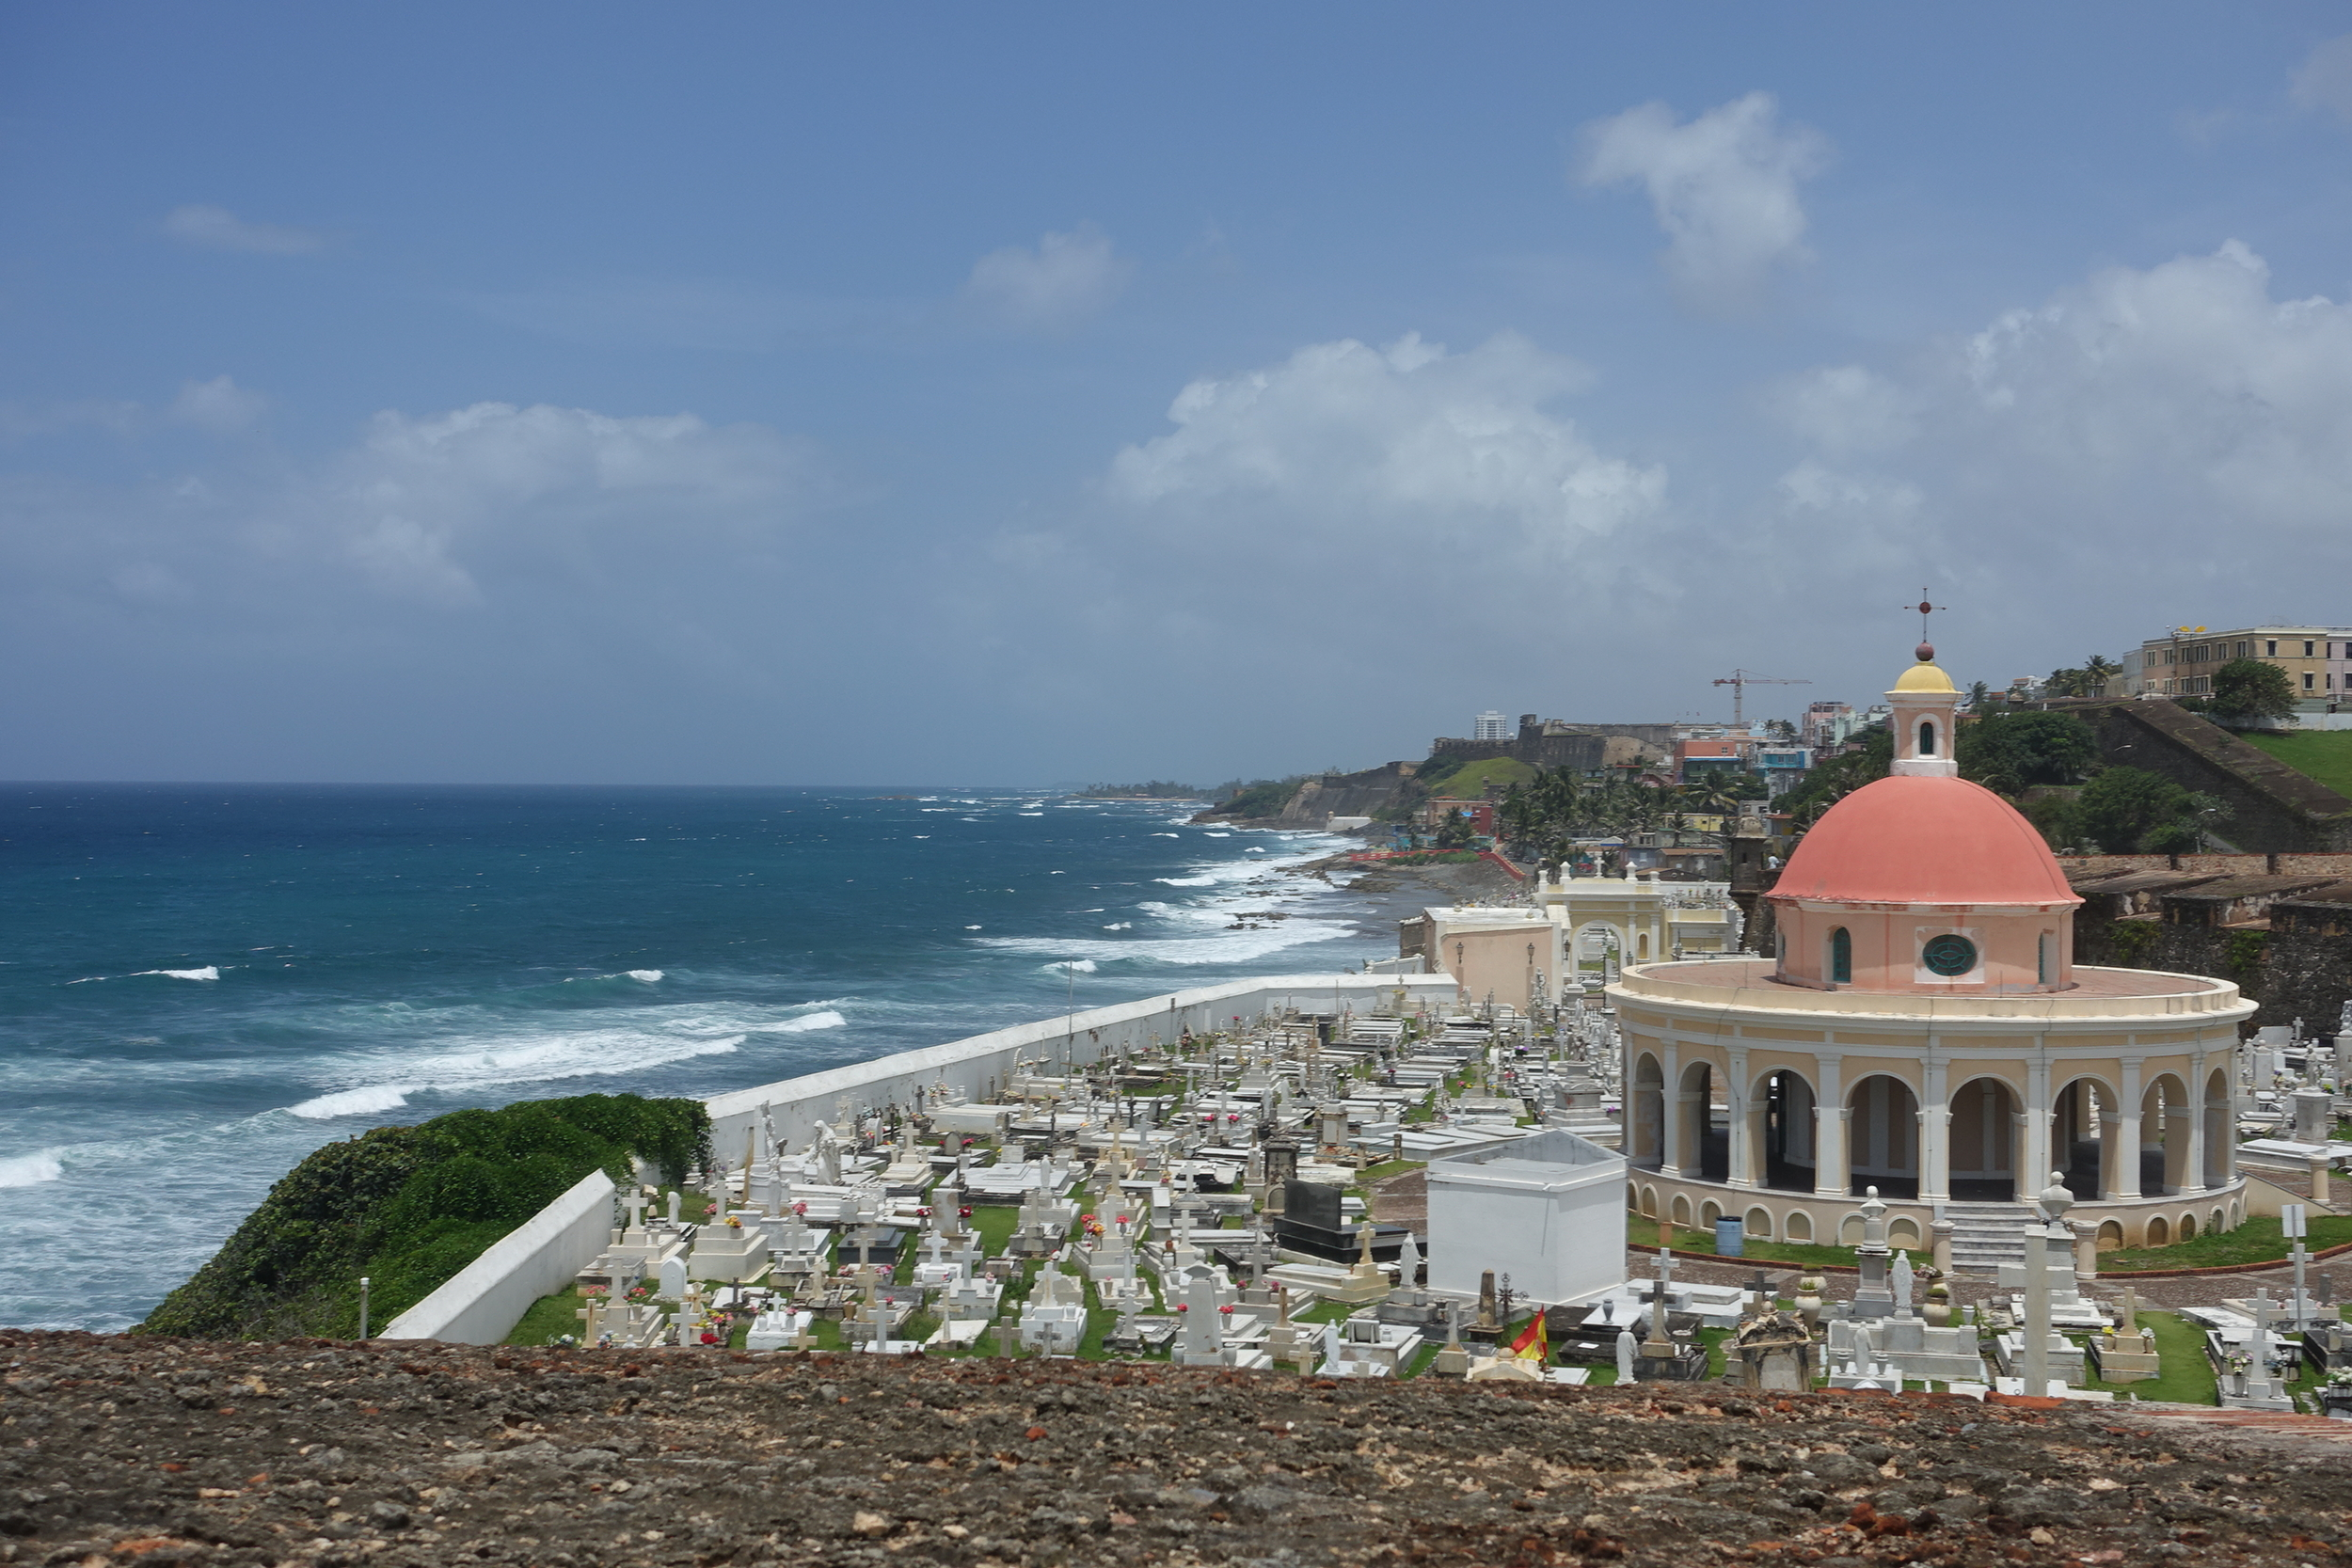 Atlantic coast and cemetery viewed from el morro